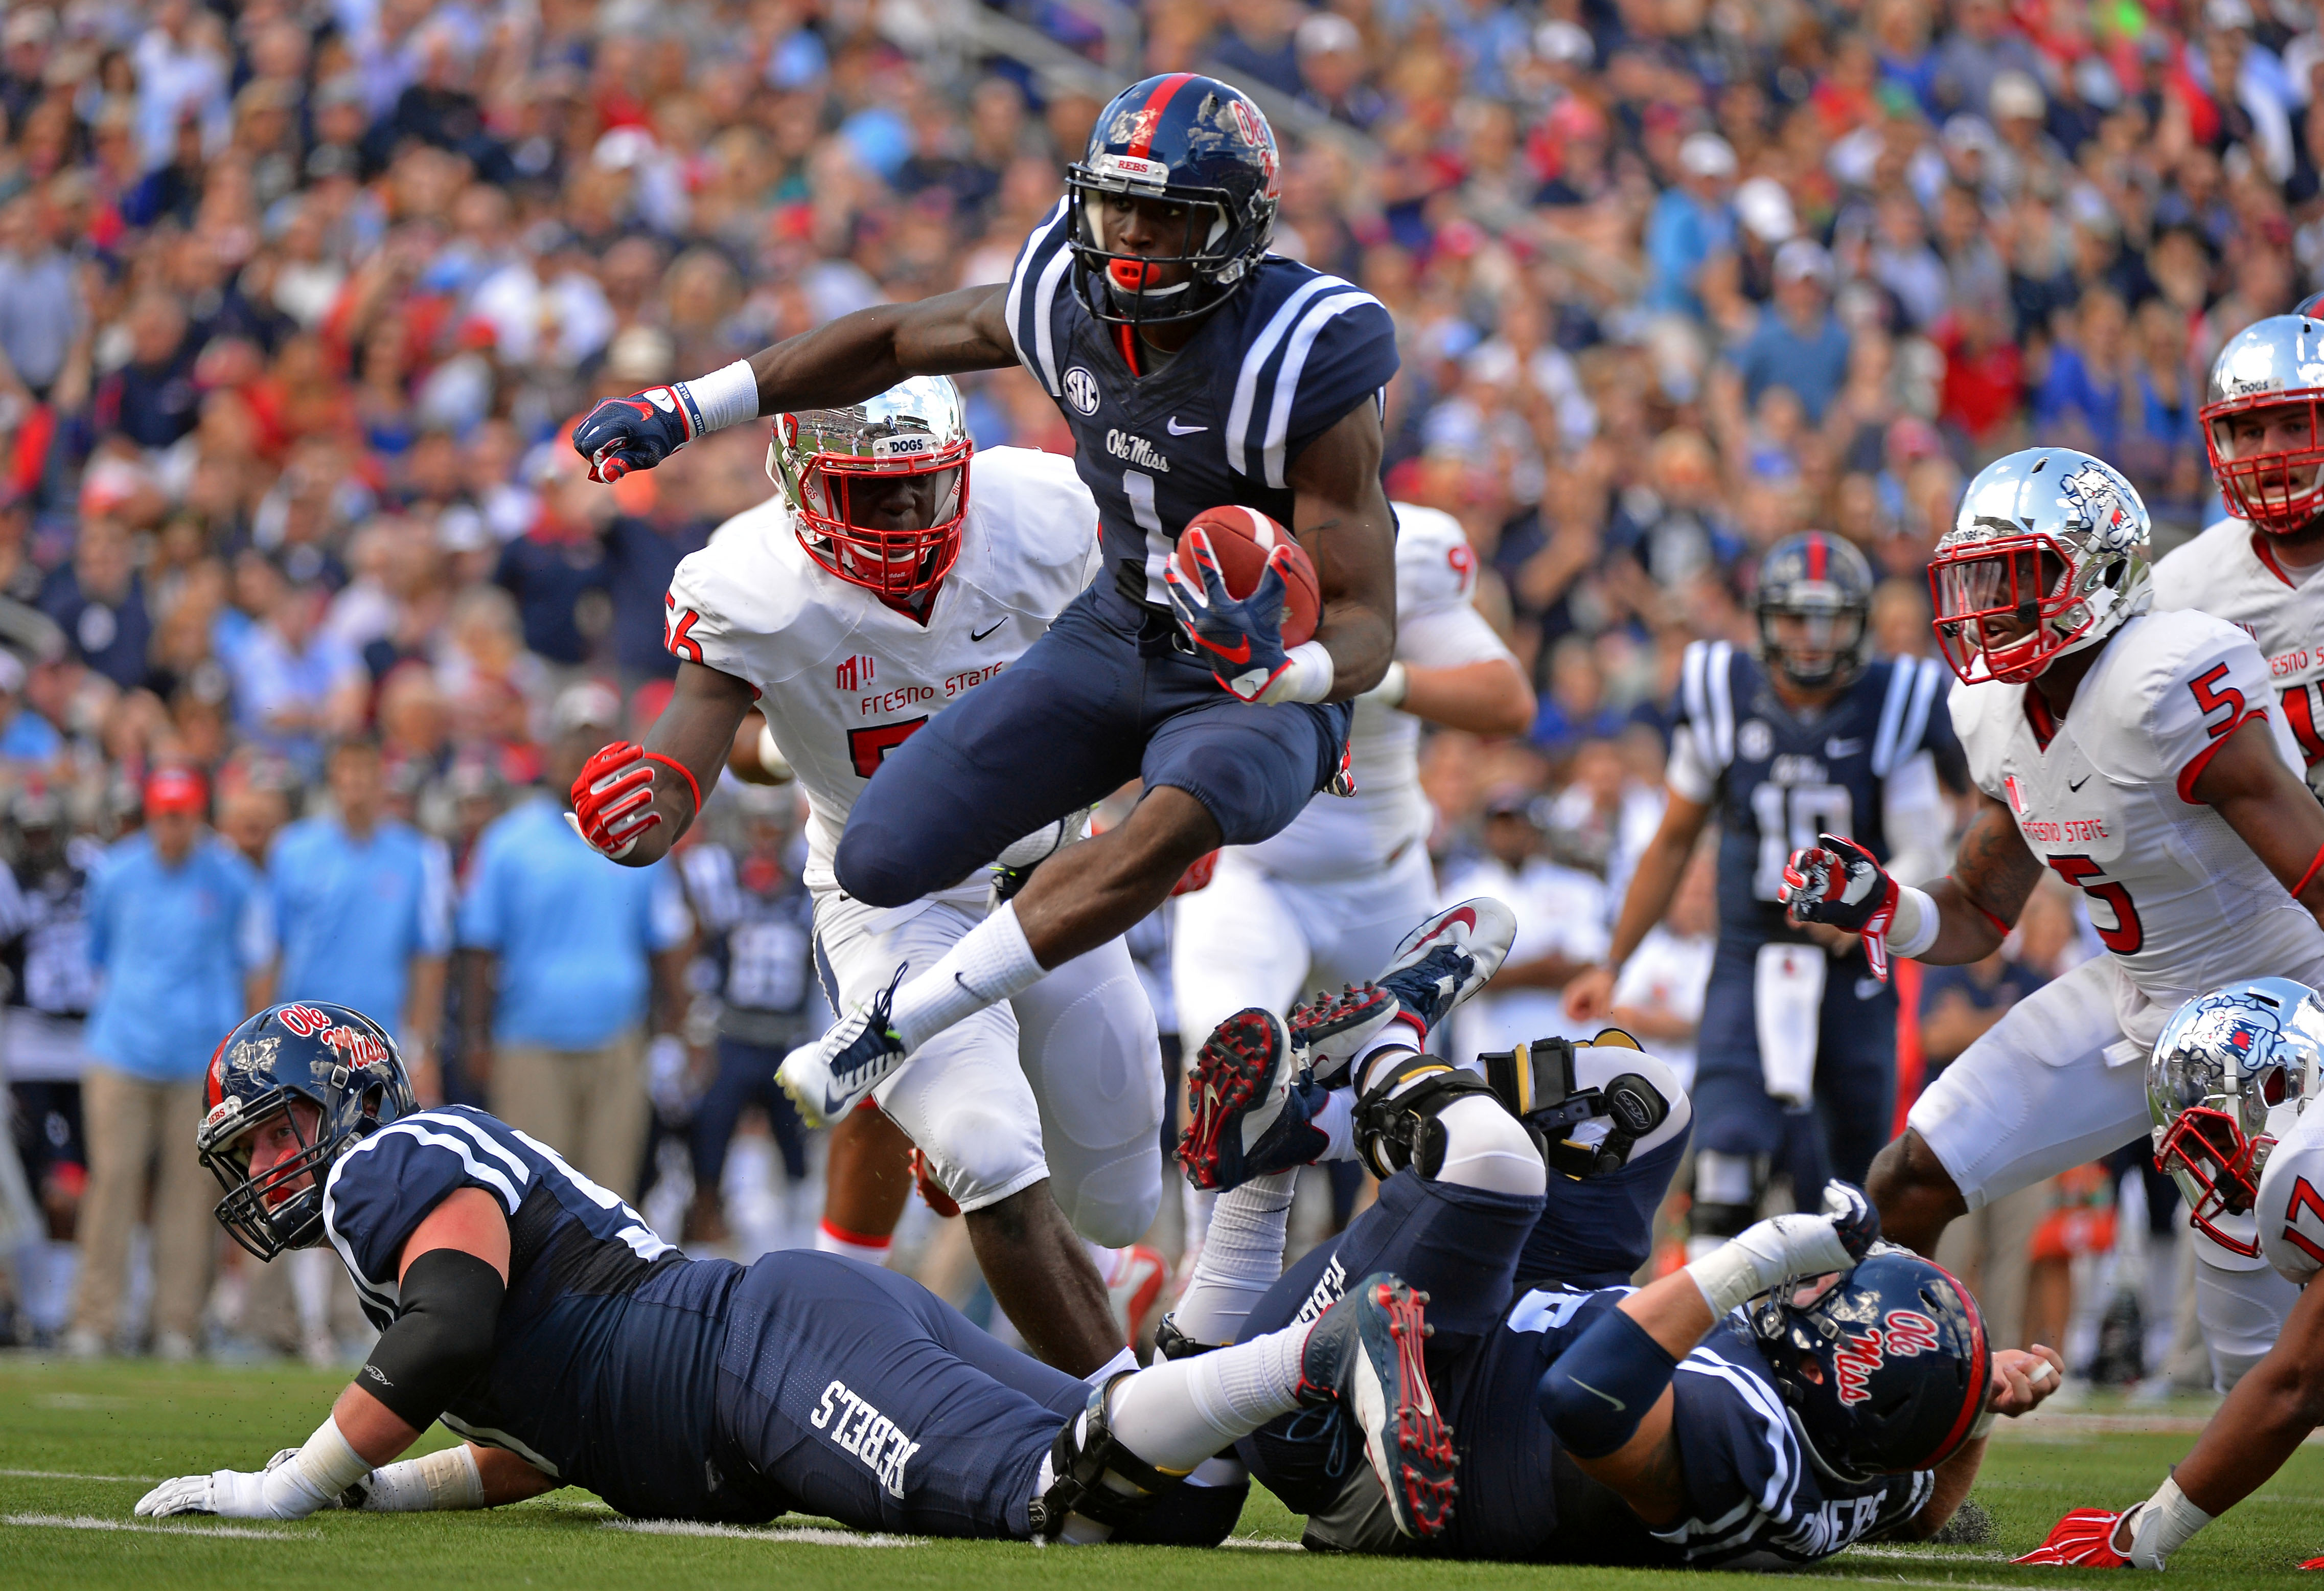 Mississippi wide receiver Laquon Treadwell (1) carries the ball after a catch in the first quarter of an NCAA college football game against Fresno State in Oxford, Miss., Saturday, Sept. 12, 2015. (AP Photo/Thomas Graning)